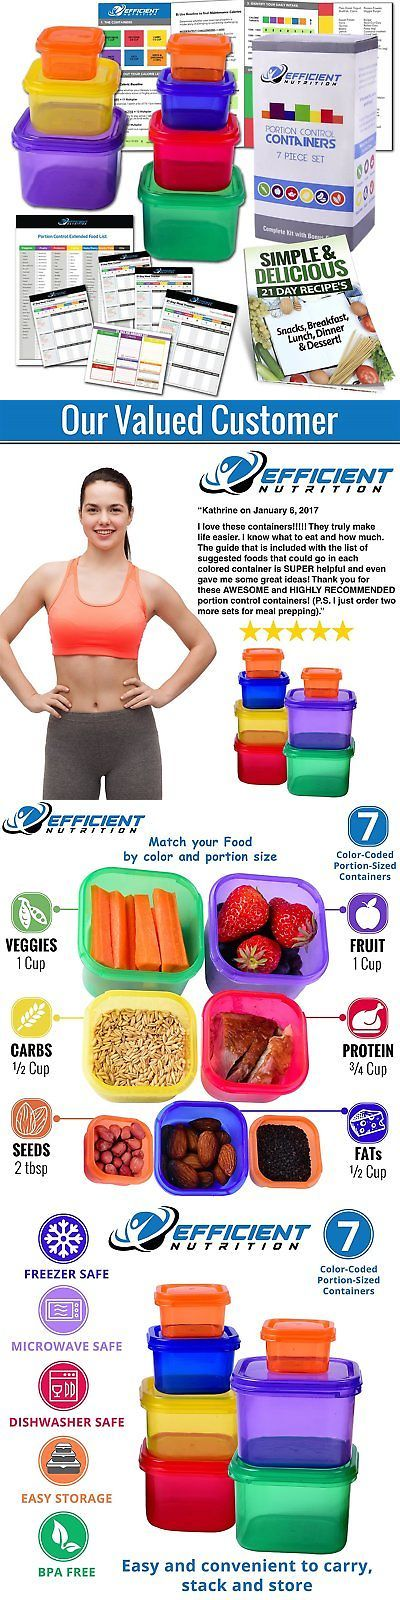 Fitness DVDs 109130: 21 Day Fix Portion Control Containers Beachbody Meal Plan Diet Weight Loss Guide -> BUY IT NOW ONLY: $11 on eBay!